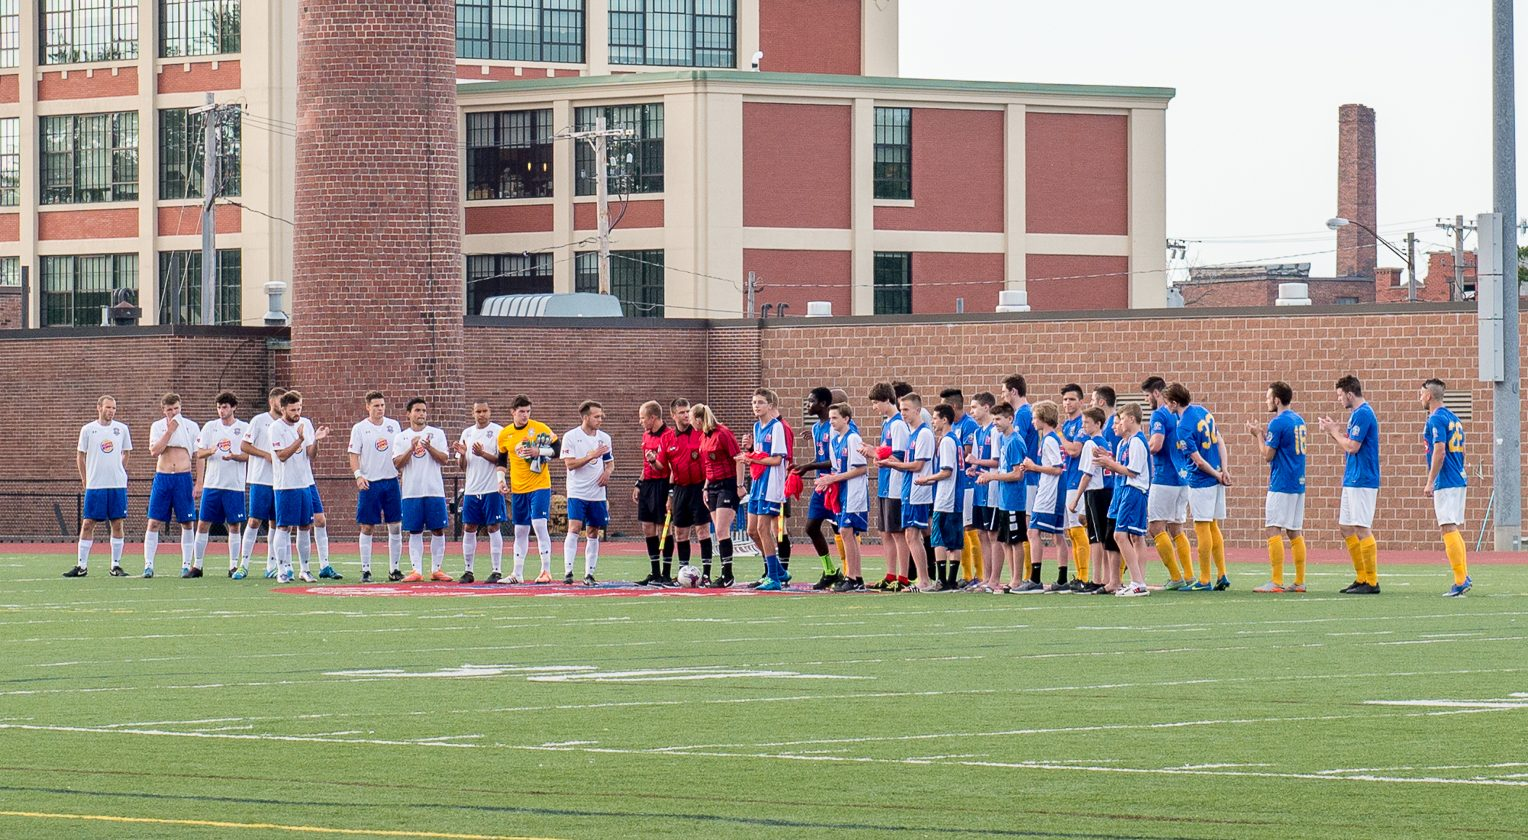 FC Buffalo and Erie line up at midfield before their first meeting, on May 27 at Robert E. Rich All High Stadium. (Matt Weinberg/Special to The News)